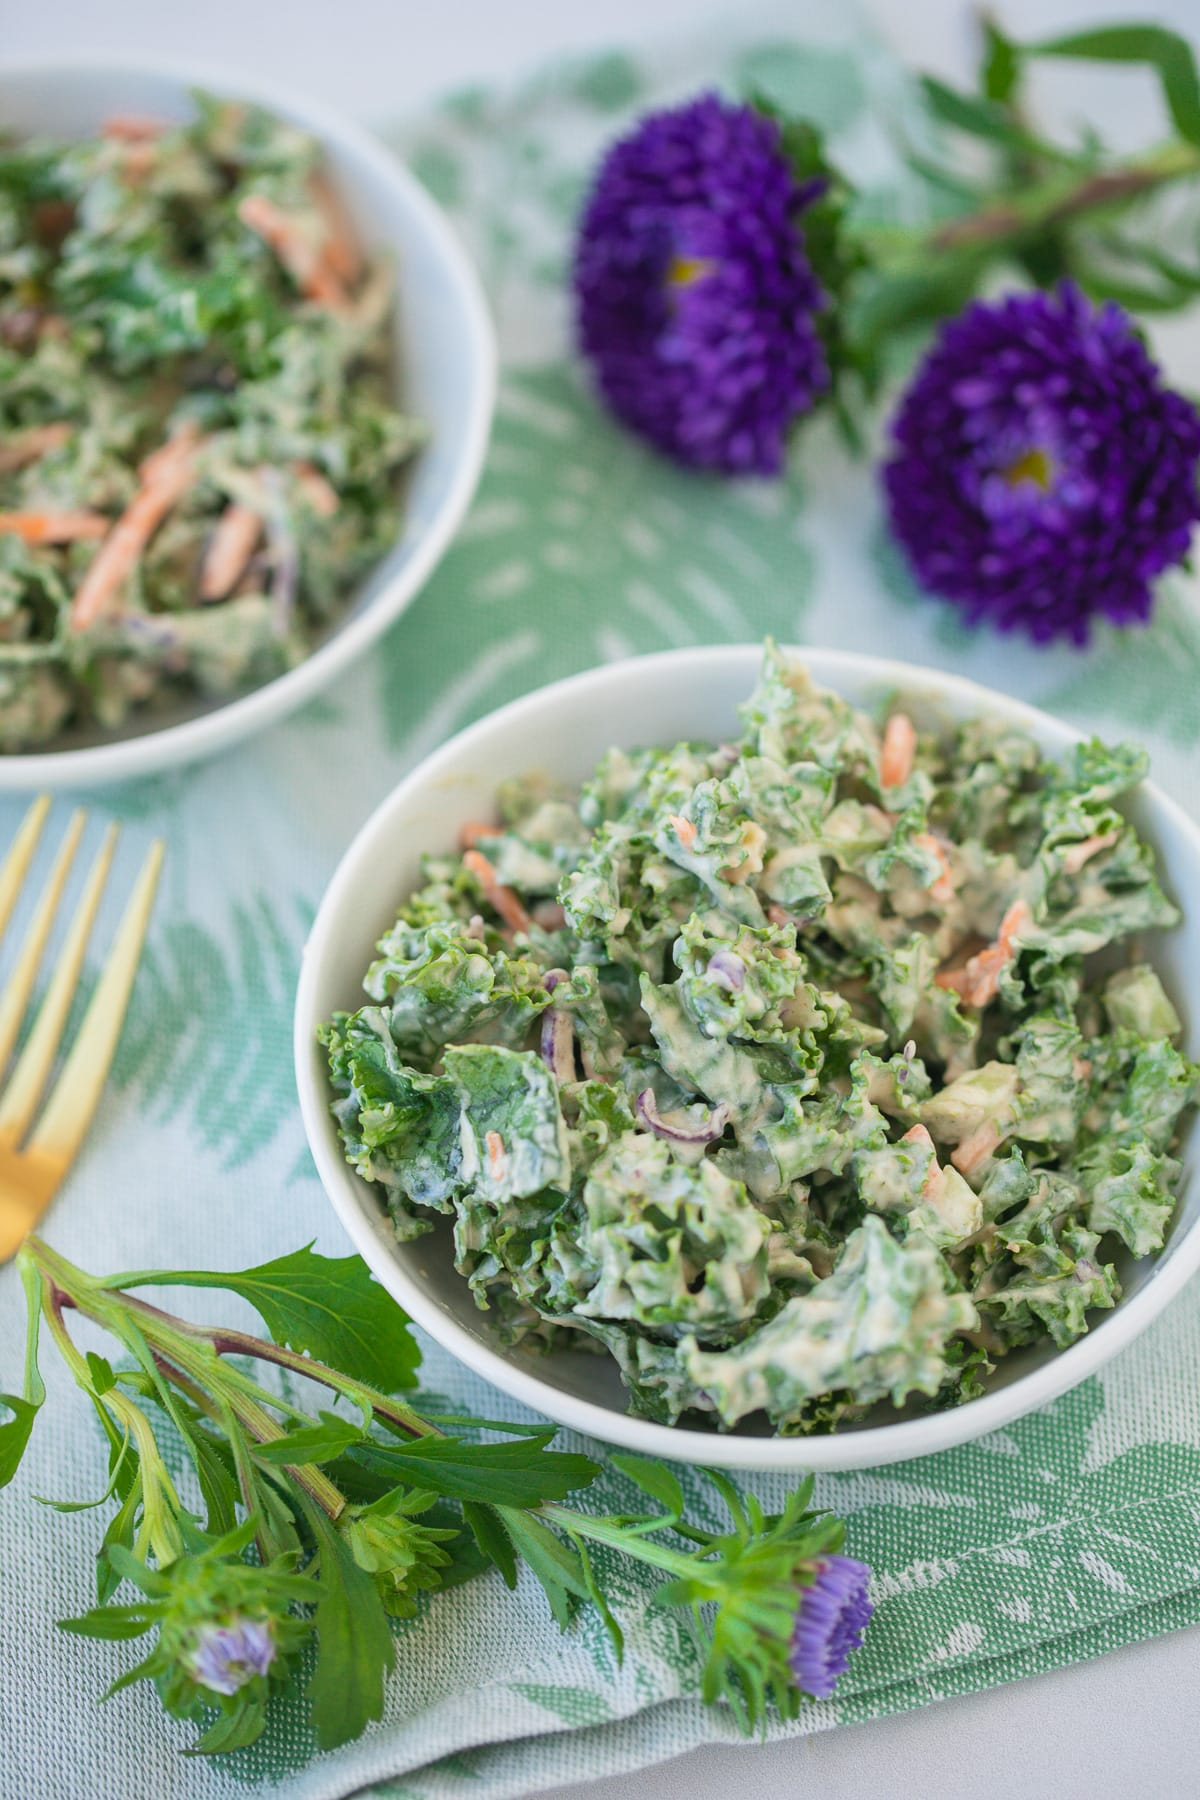 bowl of kale salad on a green floral napkin with fresh purple flowers